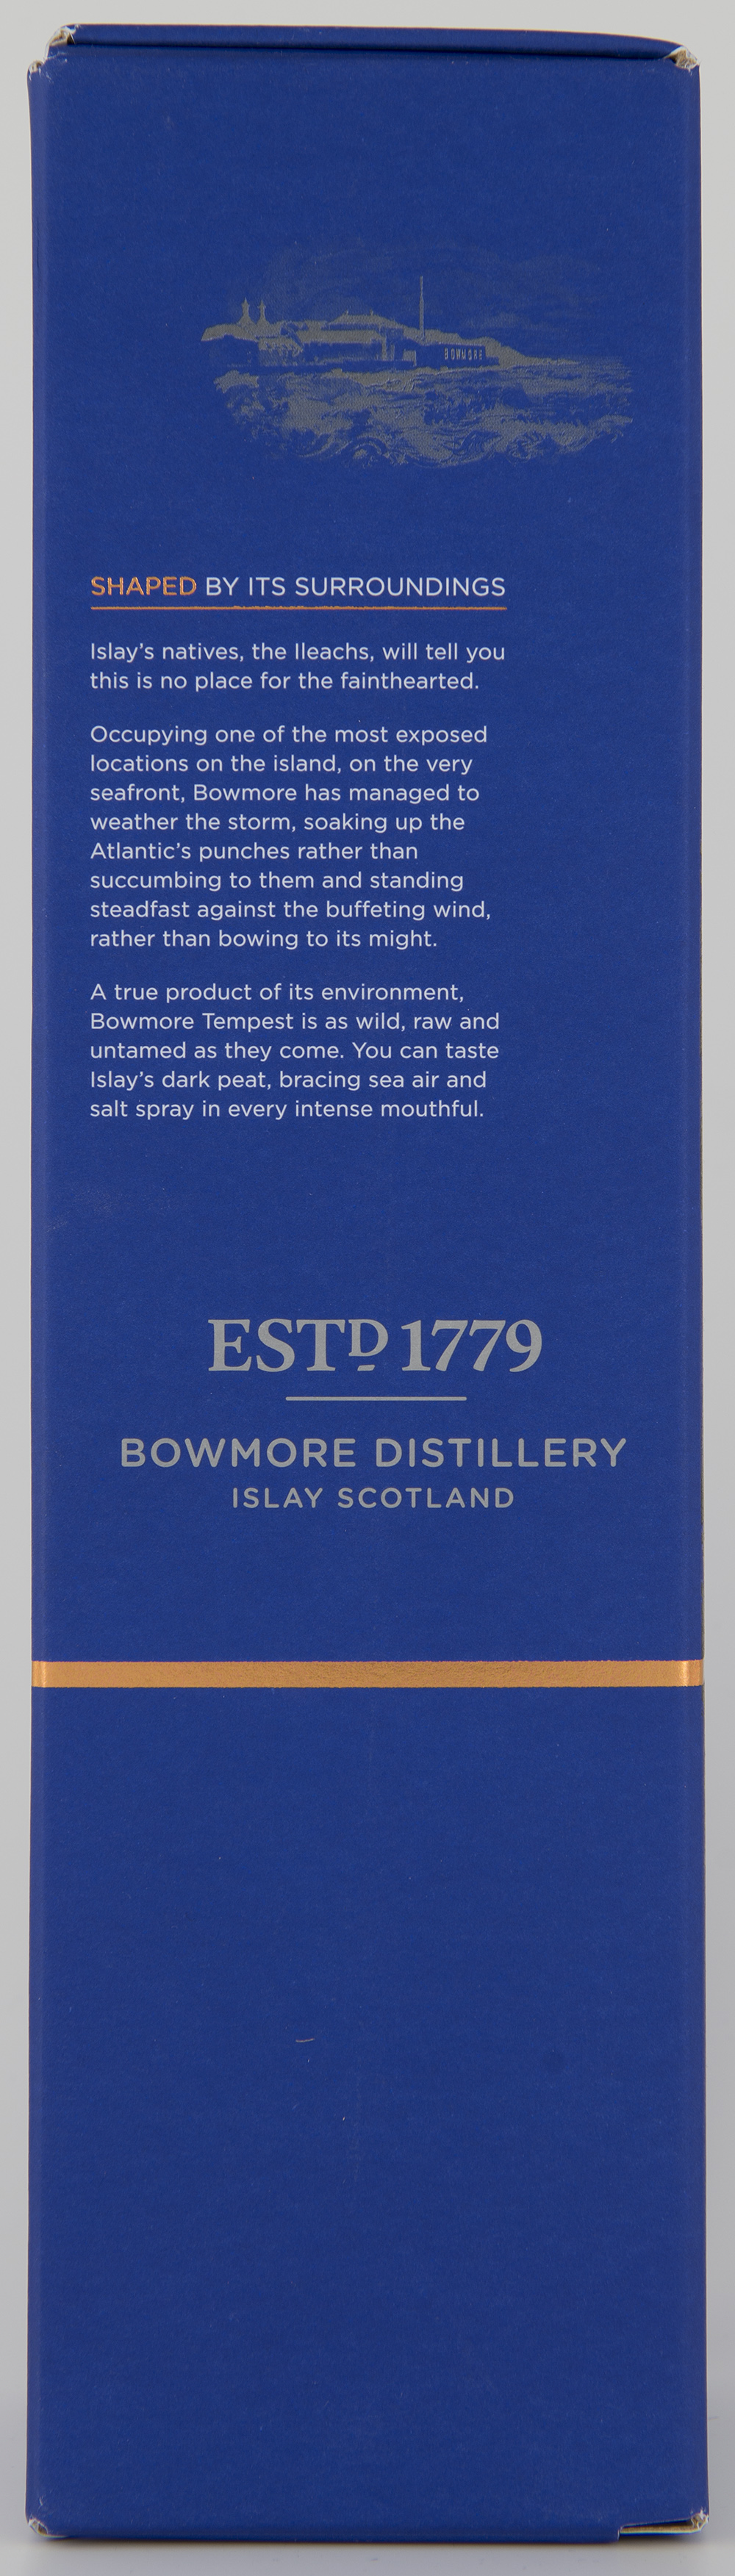 Billede: DSC_3206 Bowmore Tempest Batch IV - box side.jpg